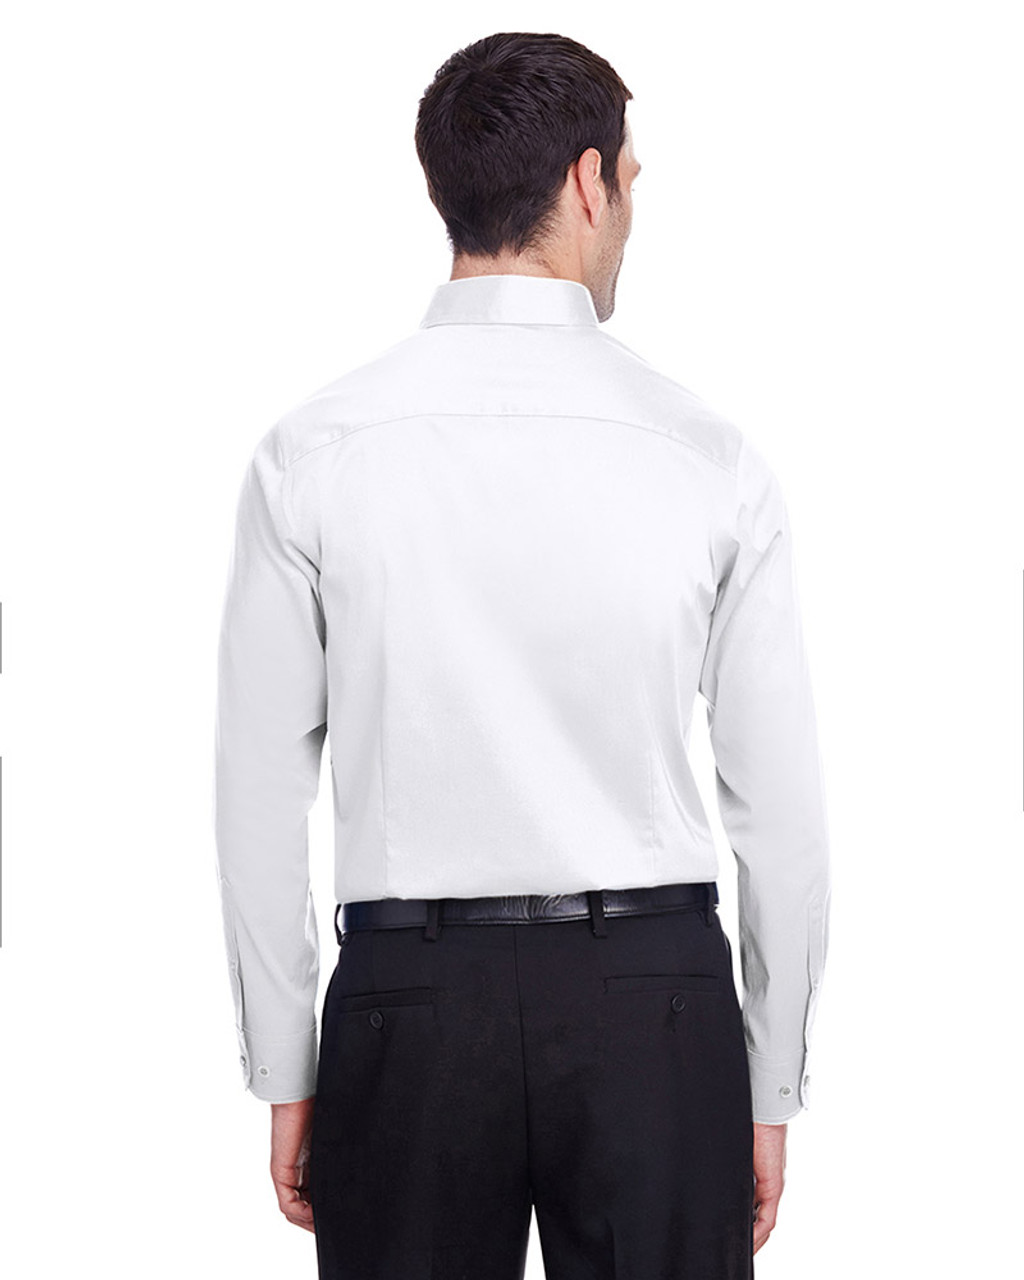 White - back, DG560 Devon & Jones Men's Crown Collection™ Stretch Broadcloth Slim Fit Shirt | Blankclothing.ca